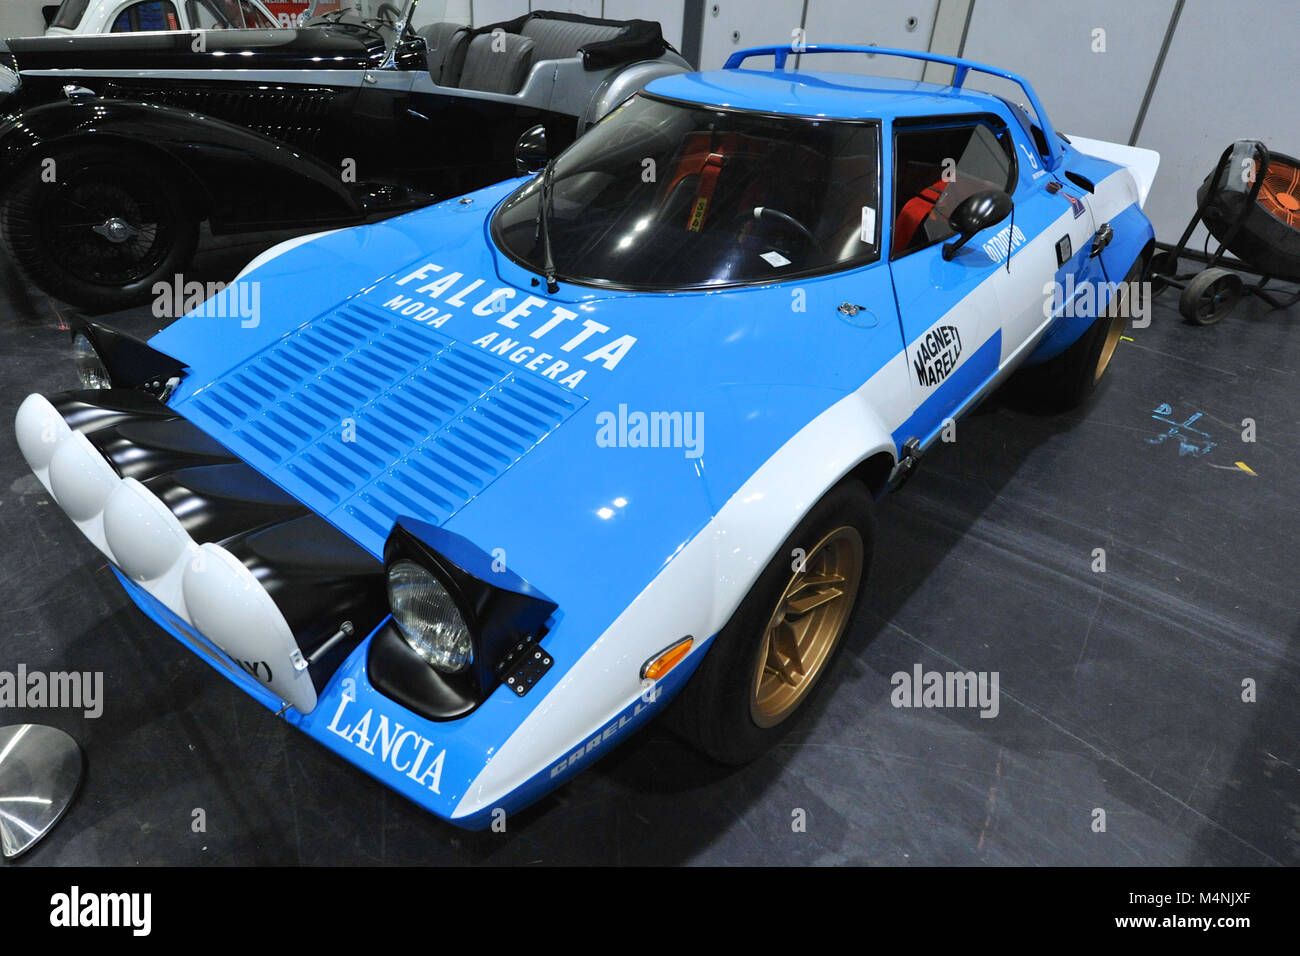 London, UK. 17th Feb, 2018. A 1974 Lancia Stratos rally car on display at the London Classic Car Show which is taking - Stock Image